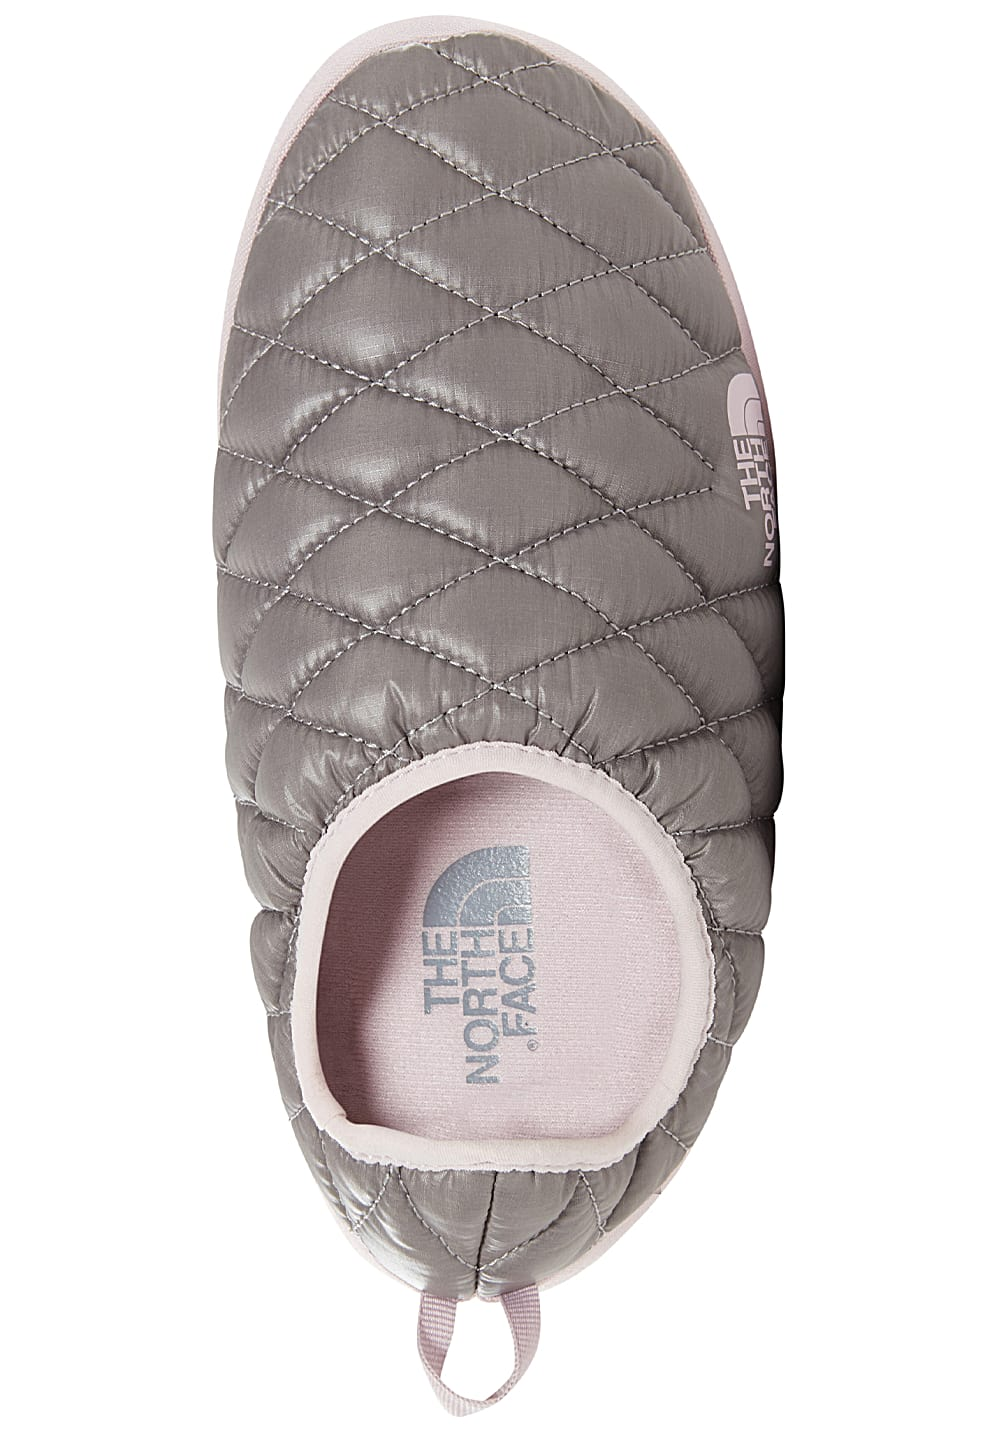 db1828583 THE NORTH FACE Thermoball Tent Mule 4 - Slippers for Women - Grey